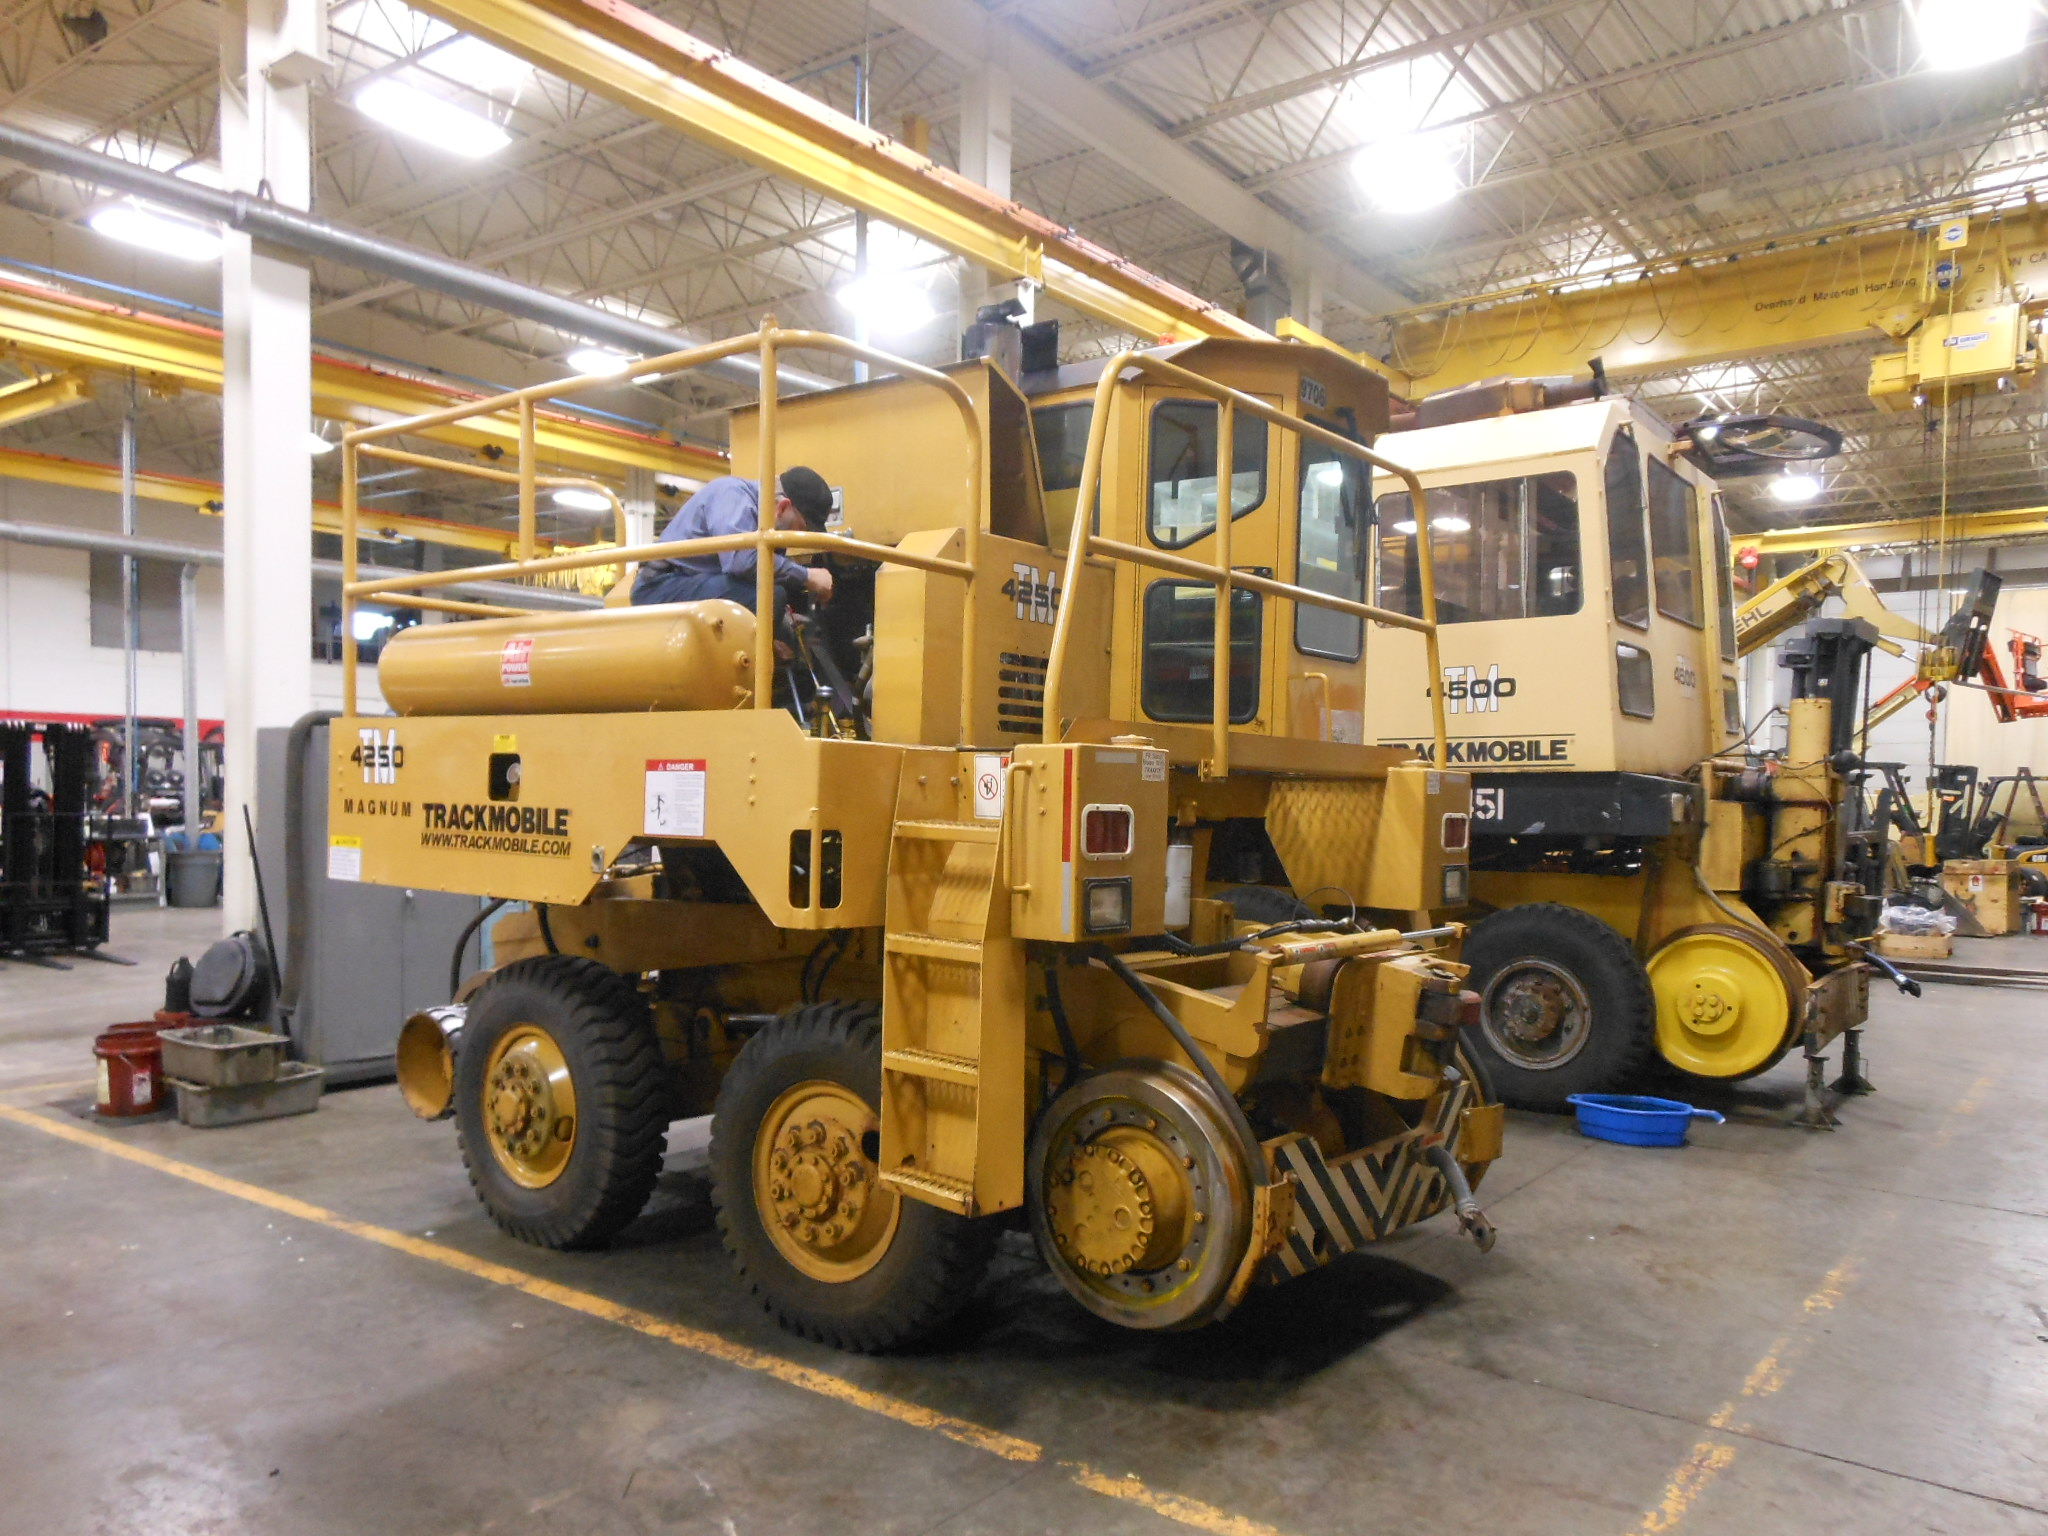 Rail car mover - New & Used, Parts, Service Training & Support